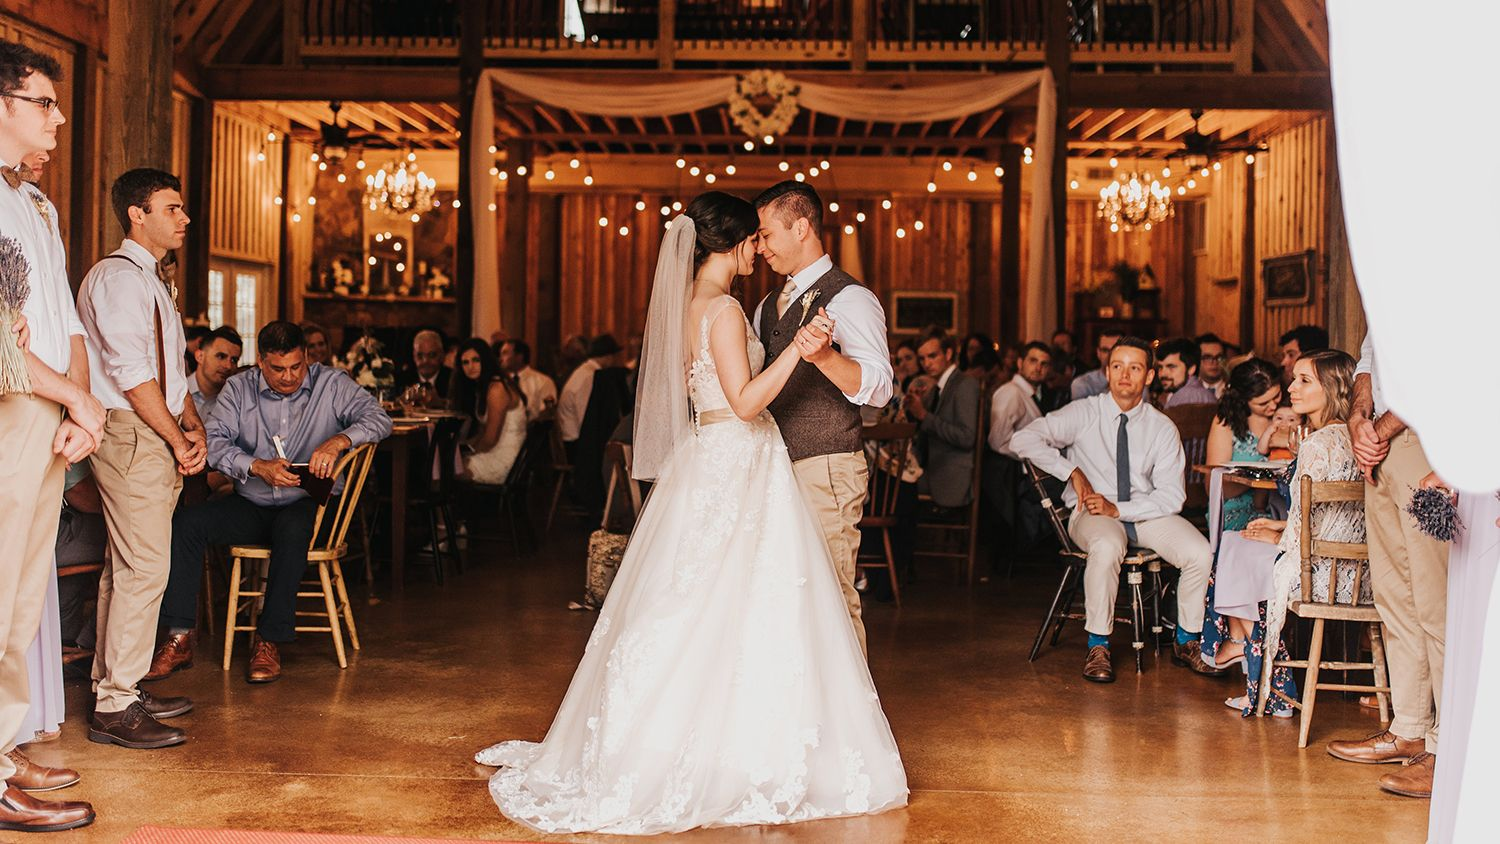 Bride And Groom First Dance Barn